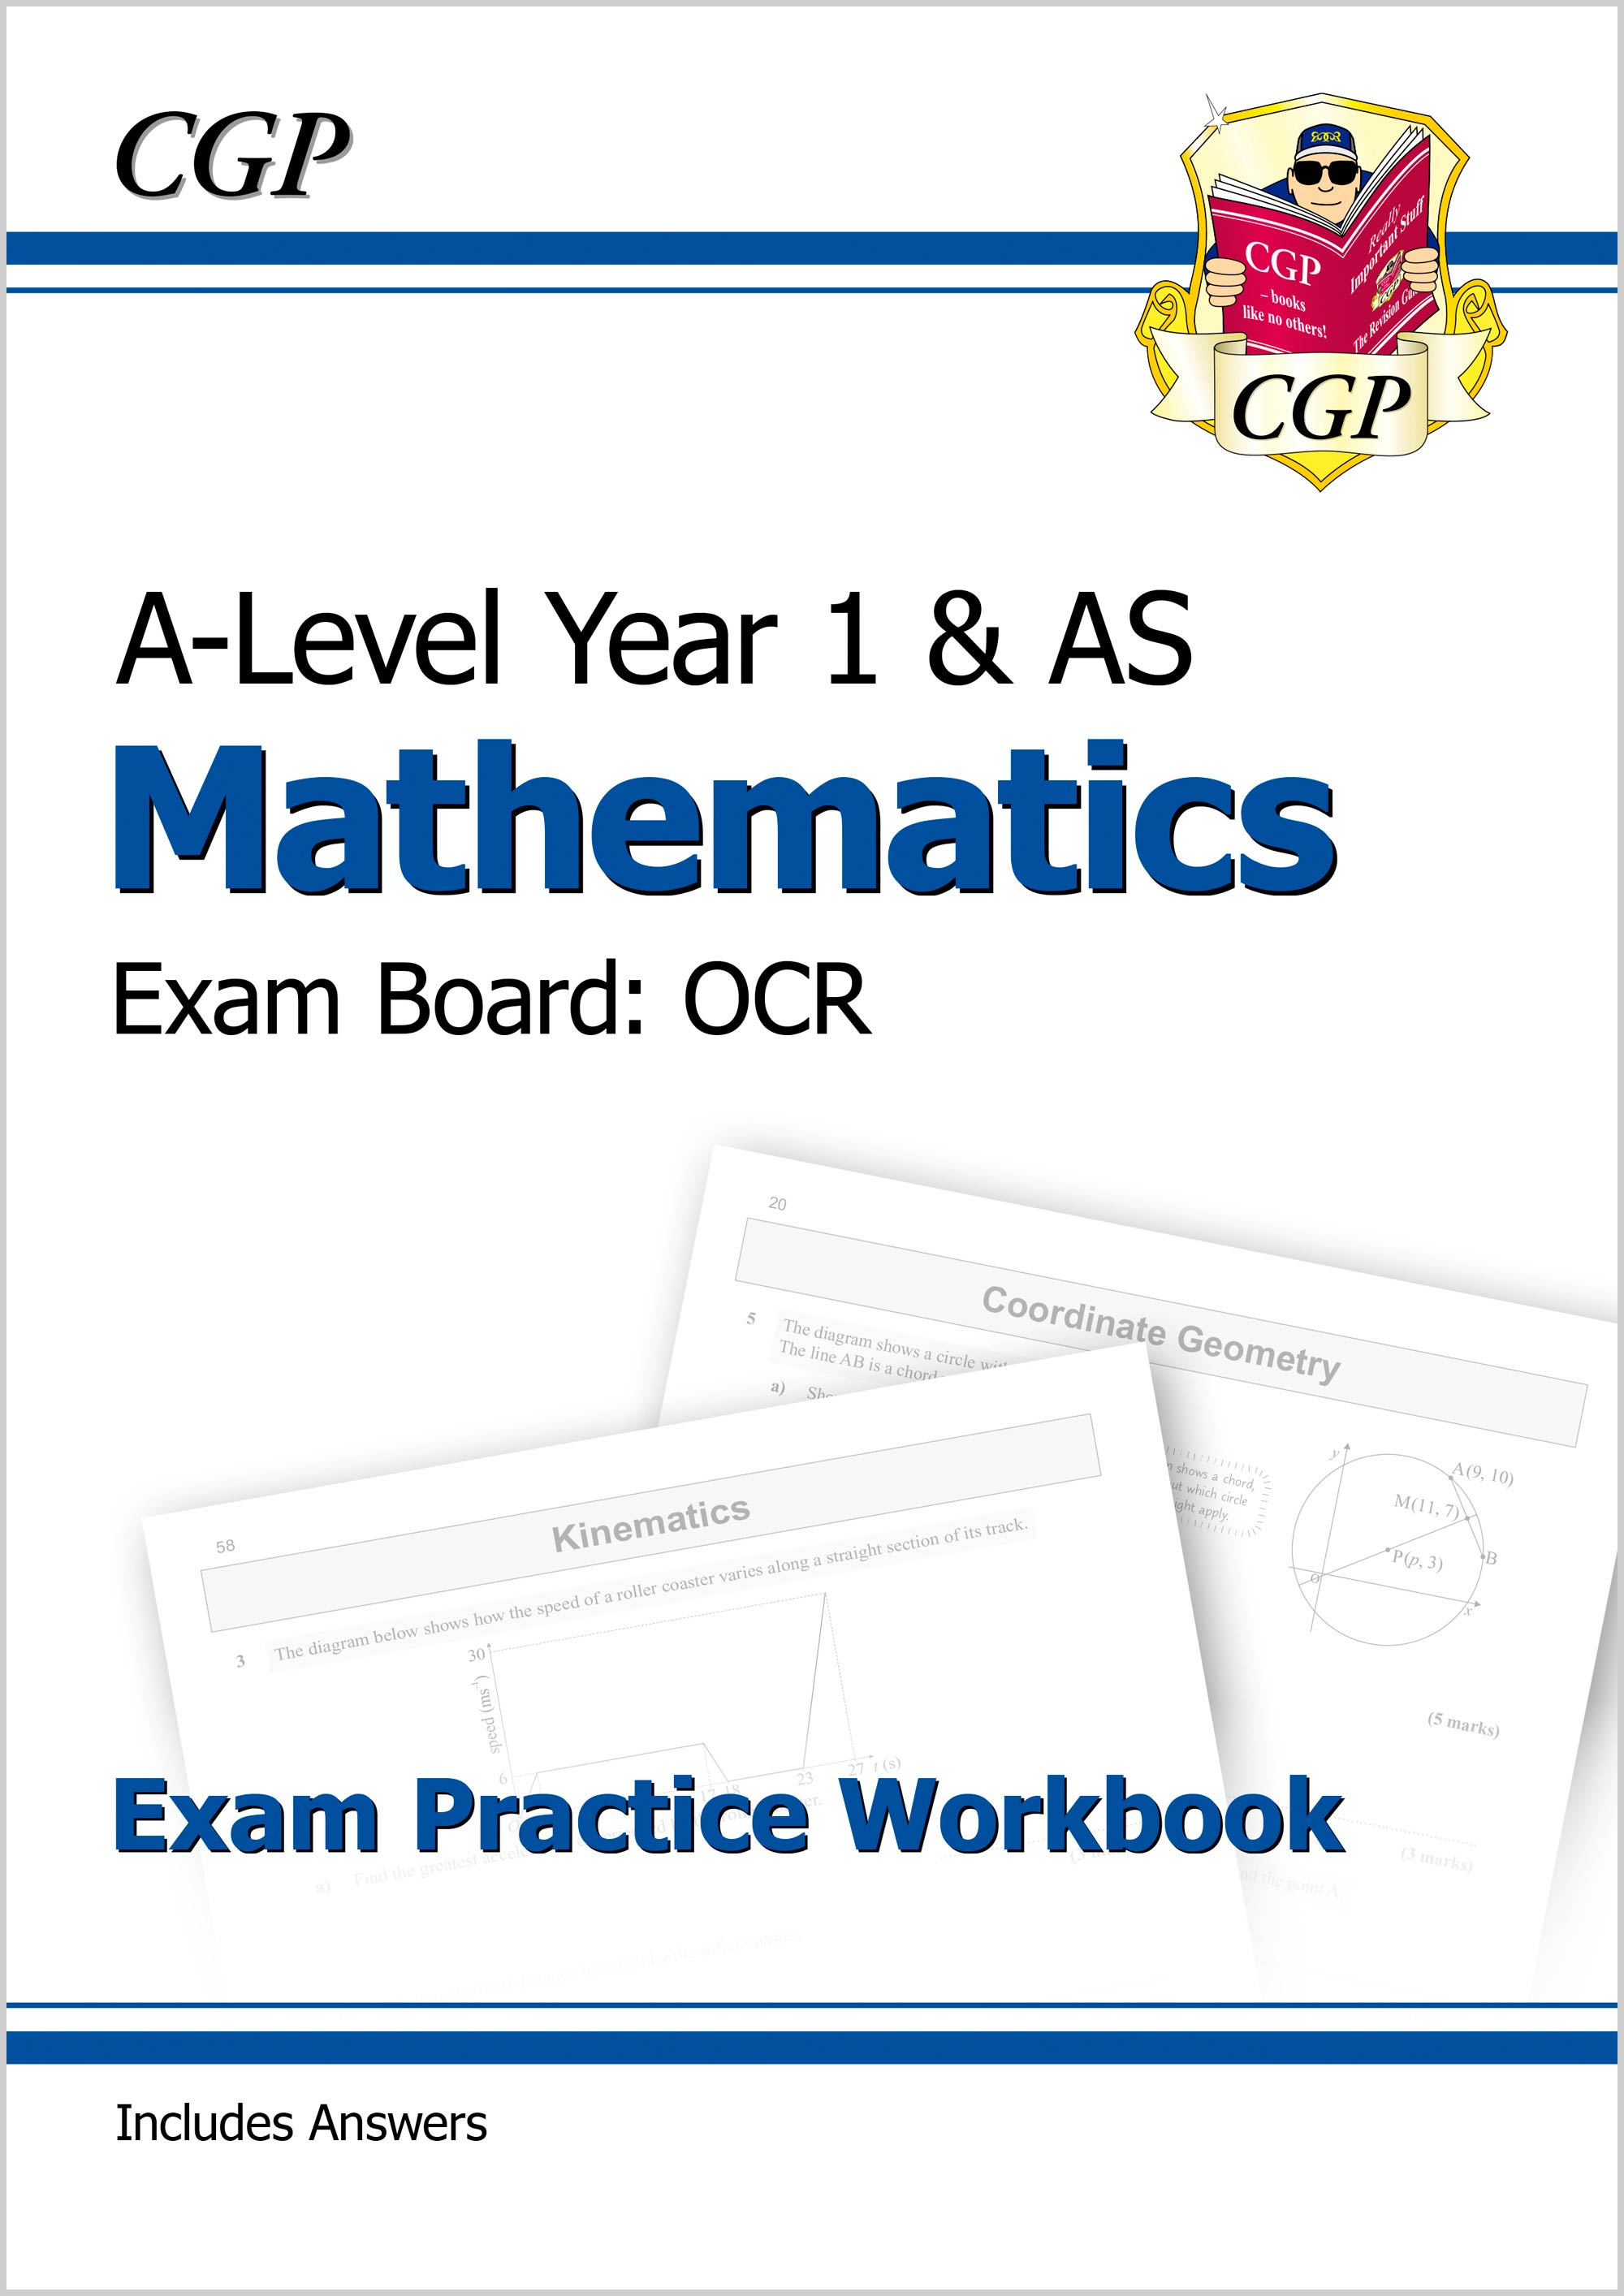 MRQ51DK - New A-Level Maths for OCR: Year 1 & AS Exam Practice Workbook